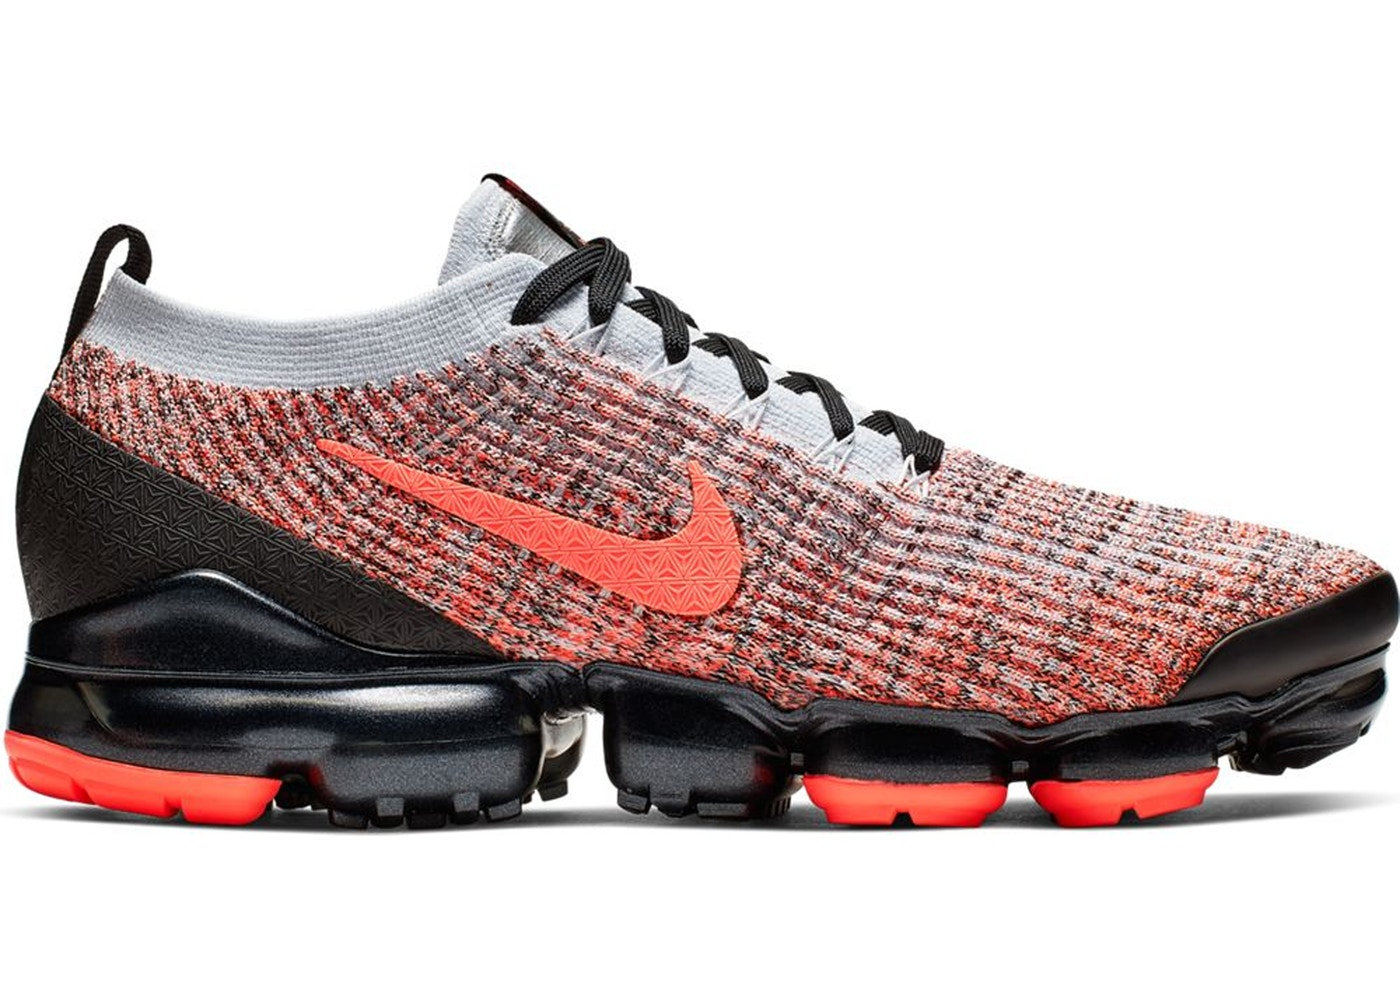 37c8418e434 Nike Air Max Shoes - Release Date